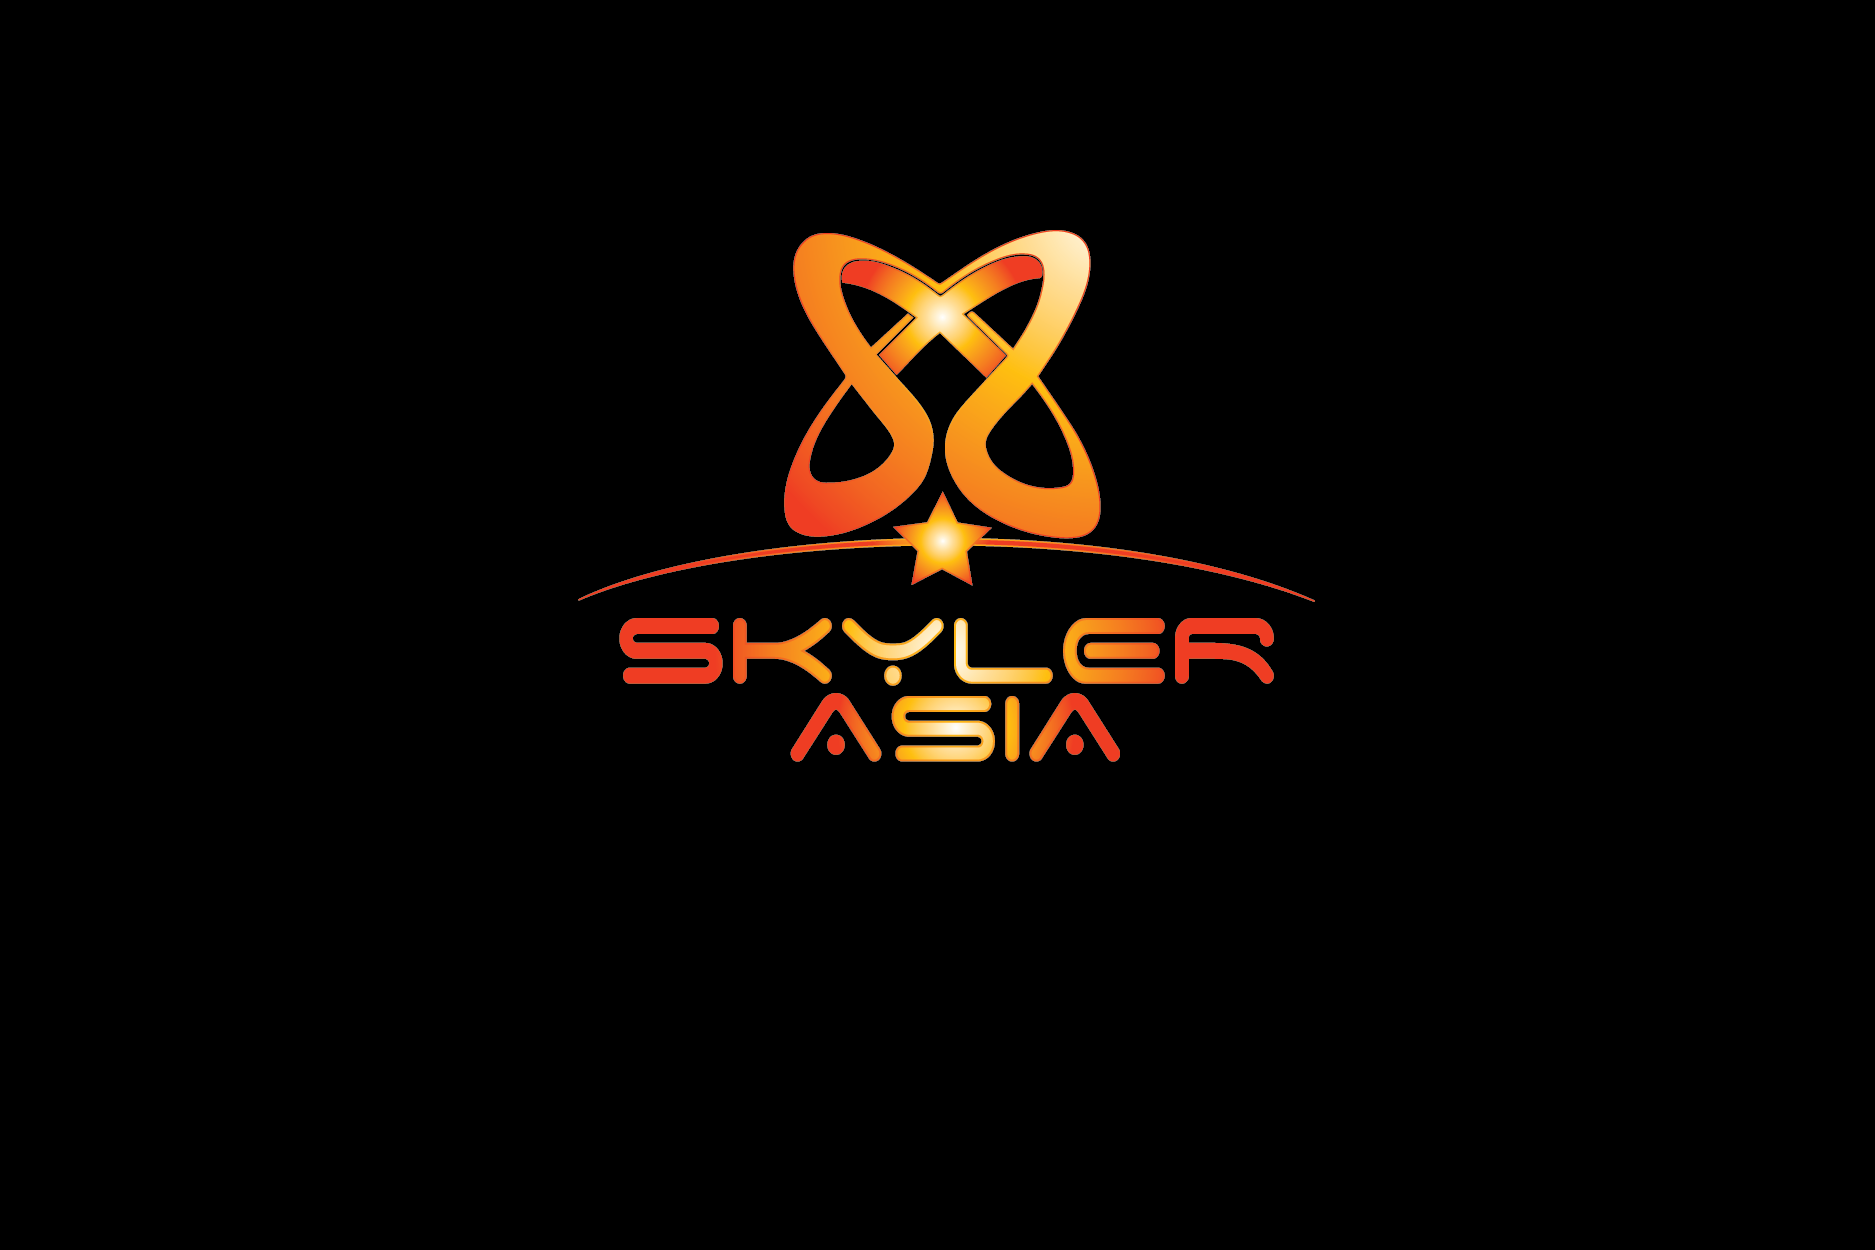 Logo Design by Private User - Entry No. 255 in the Logo Design Contest Artistic Logo Design for Skyler.Asia.